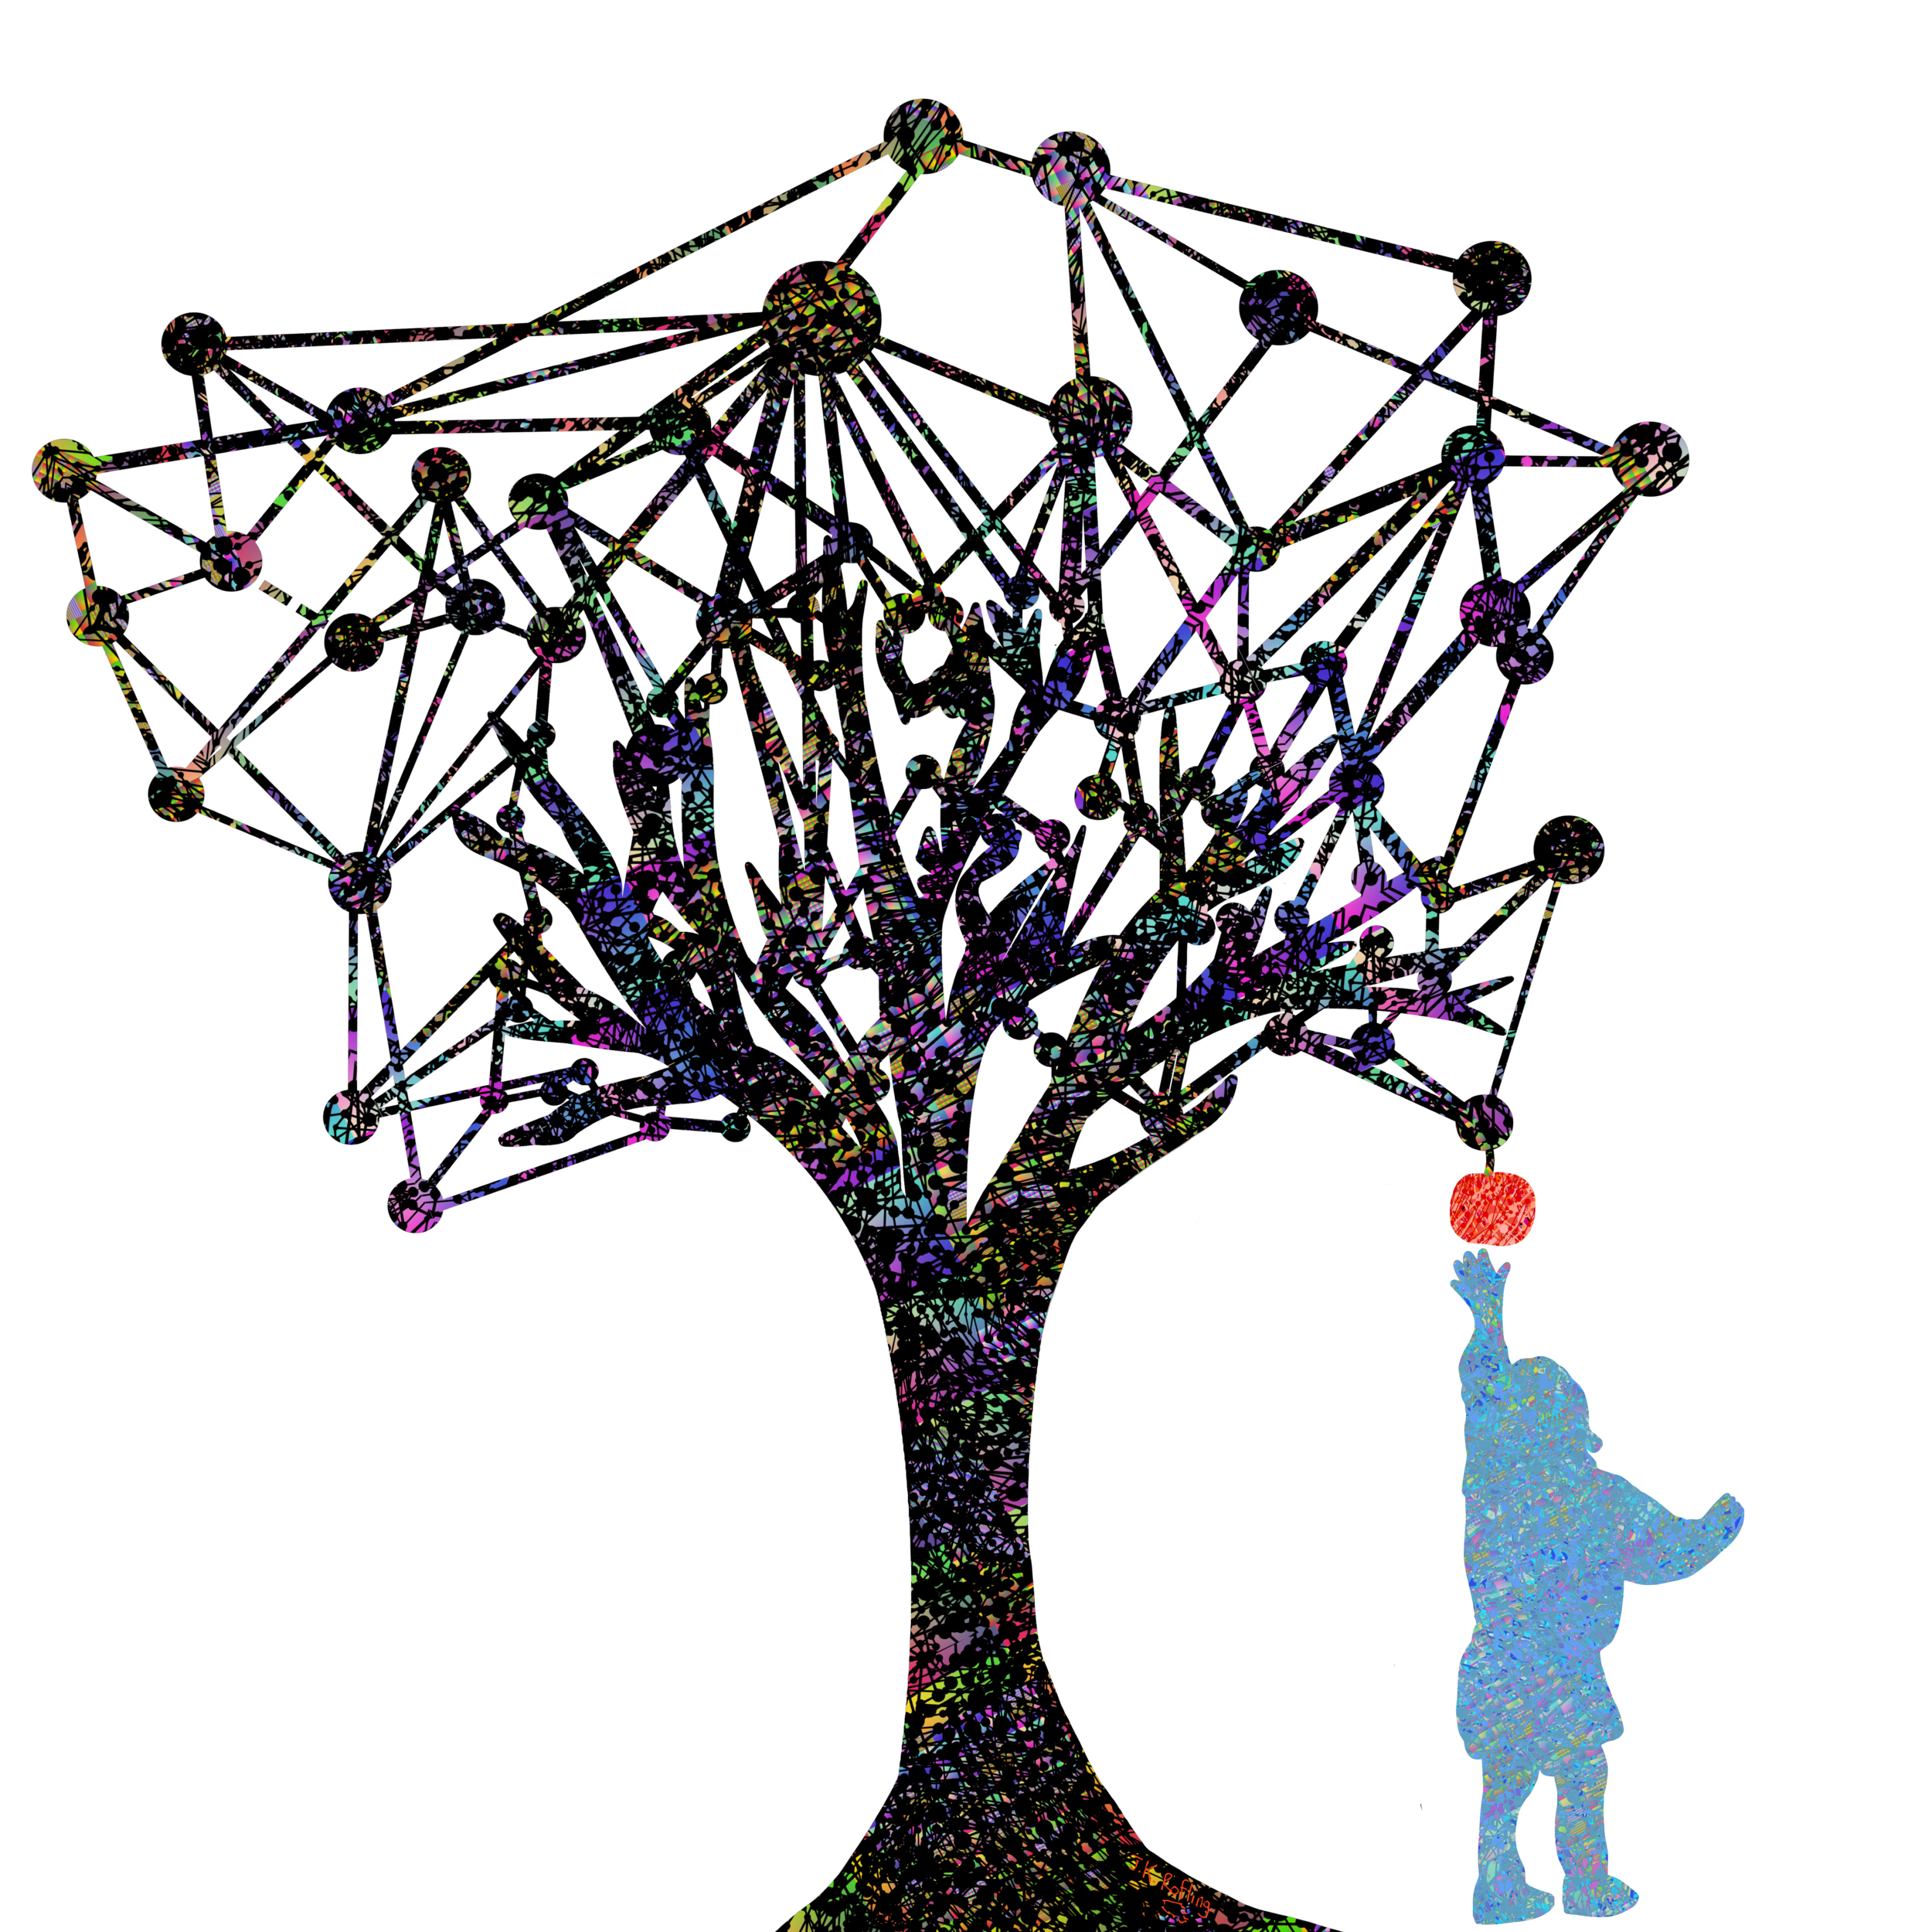 the Tree1.png